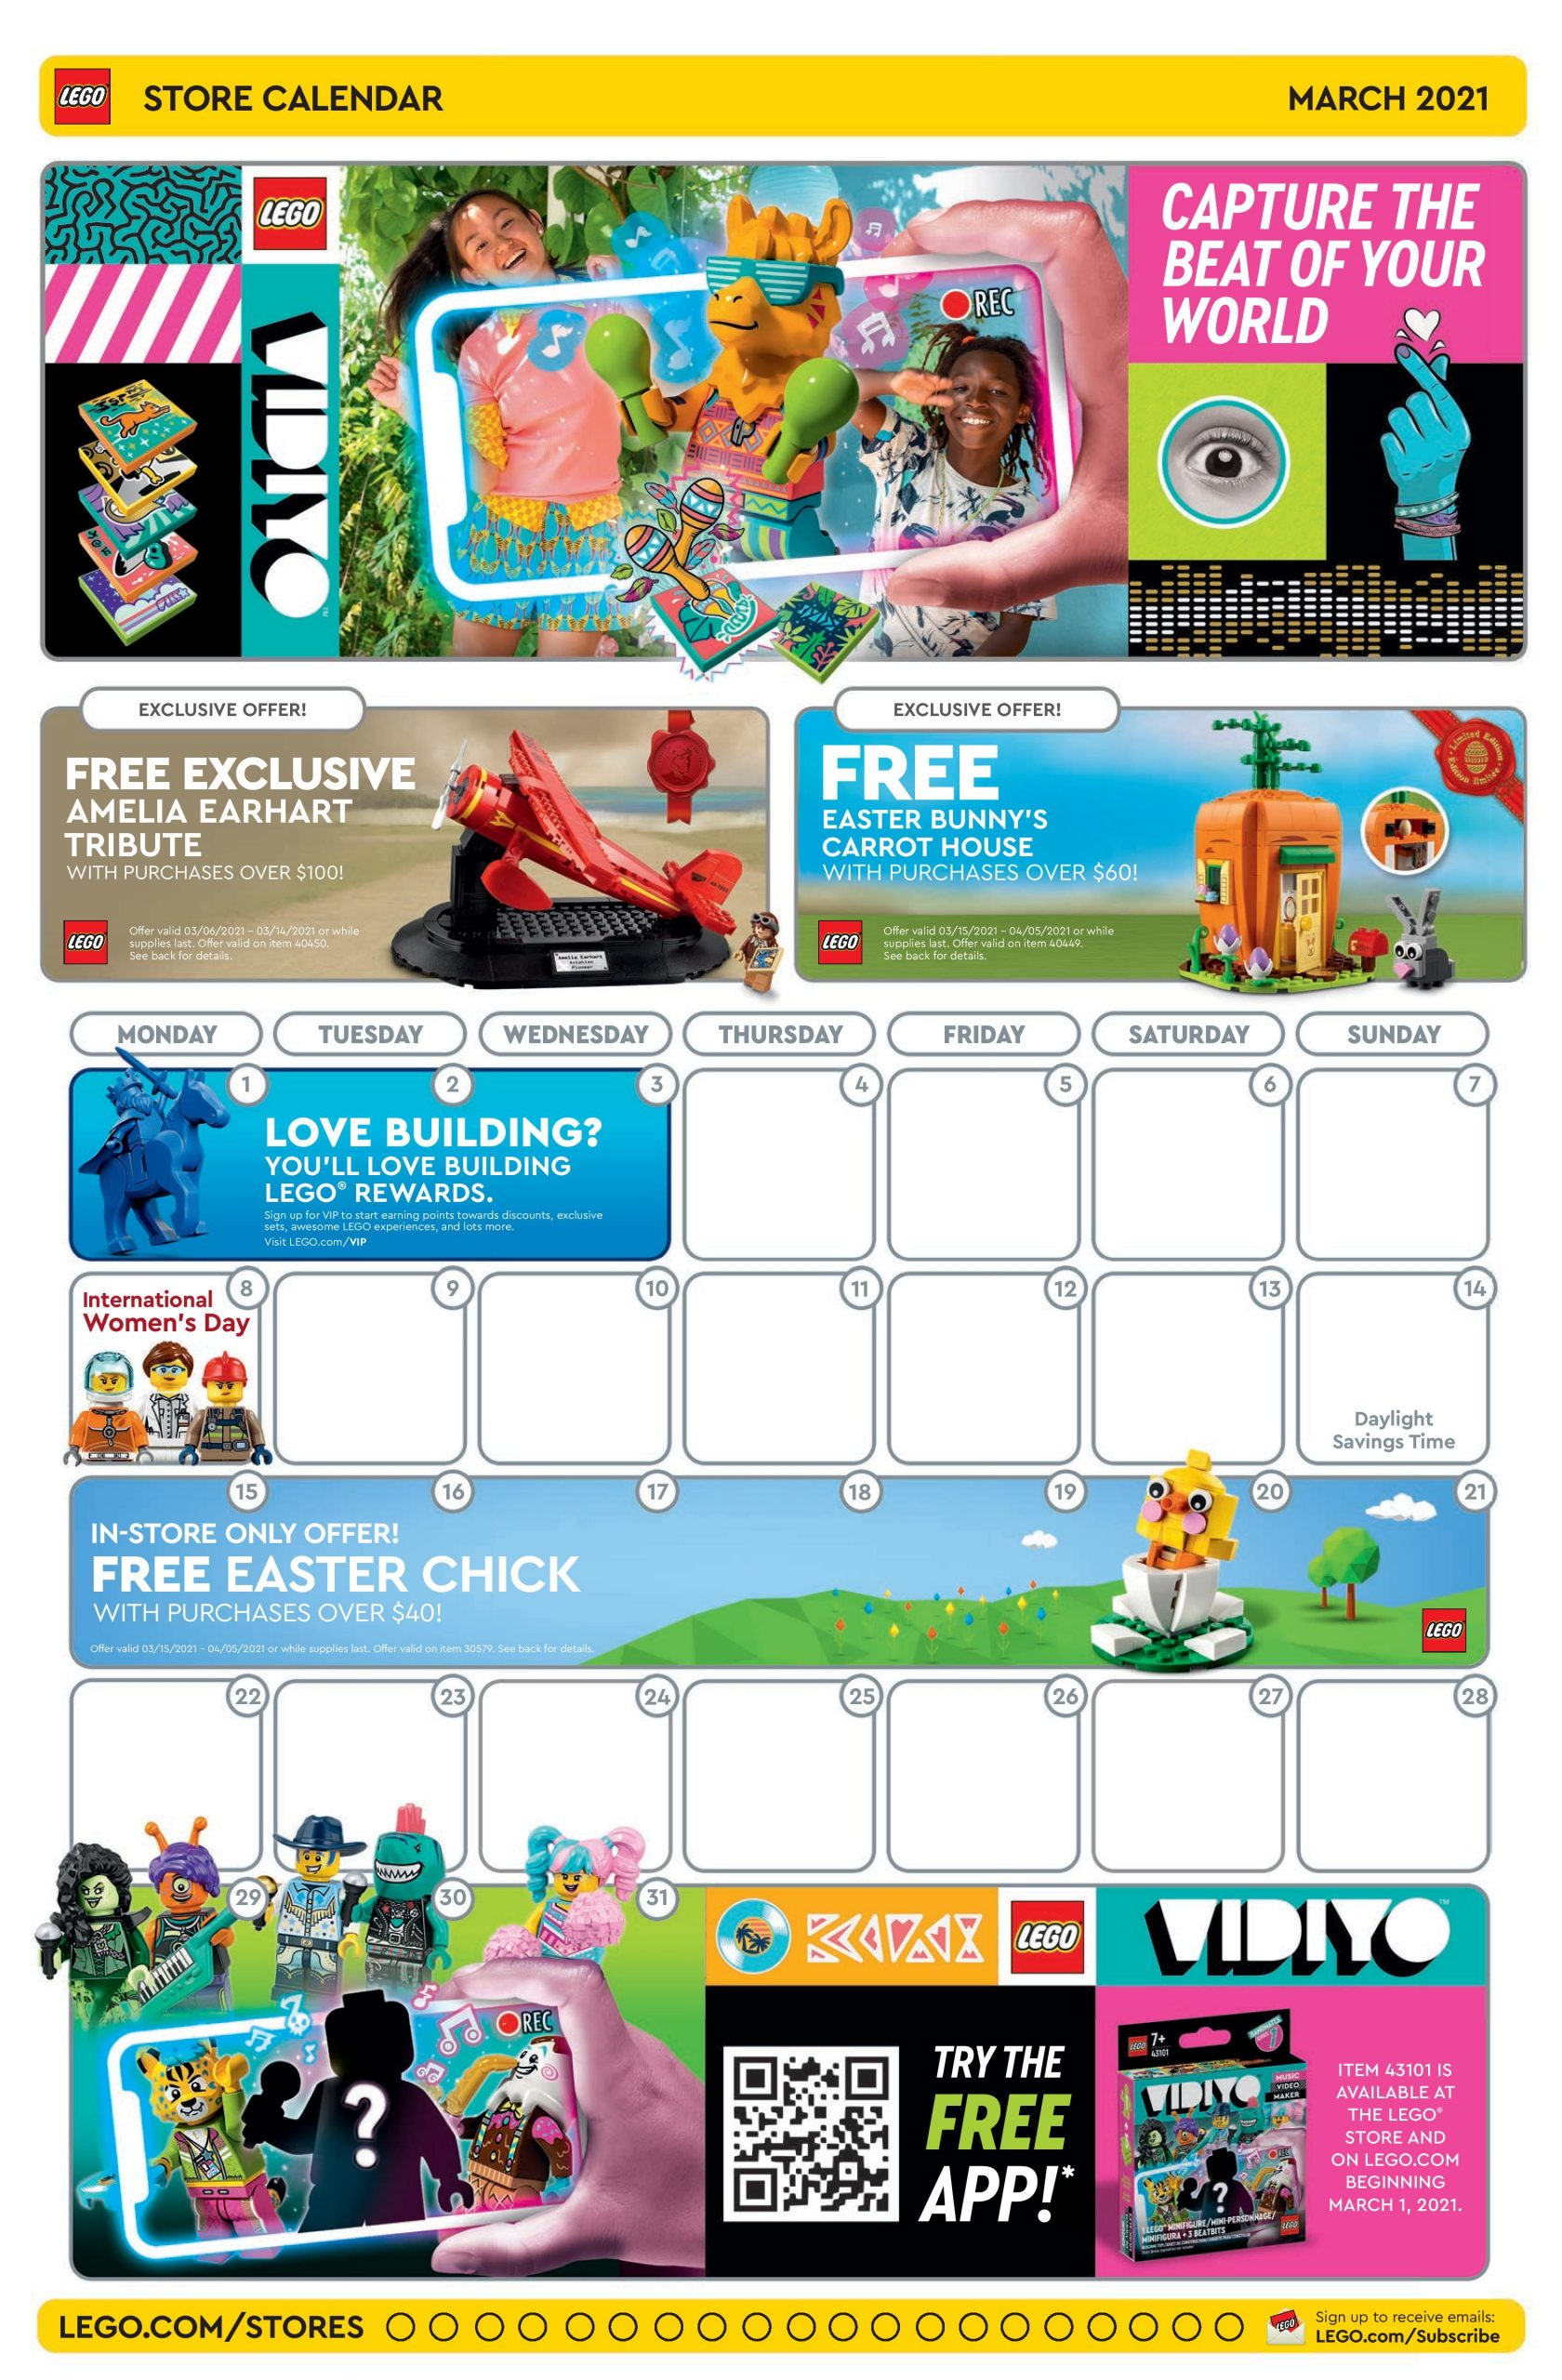 LEGO March 2021 Store Calendar Promotions & Events – The Brick Fan